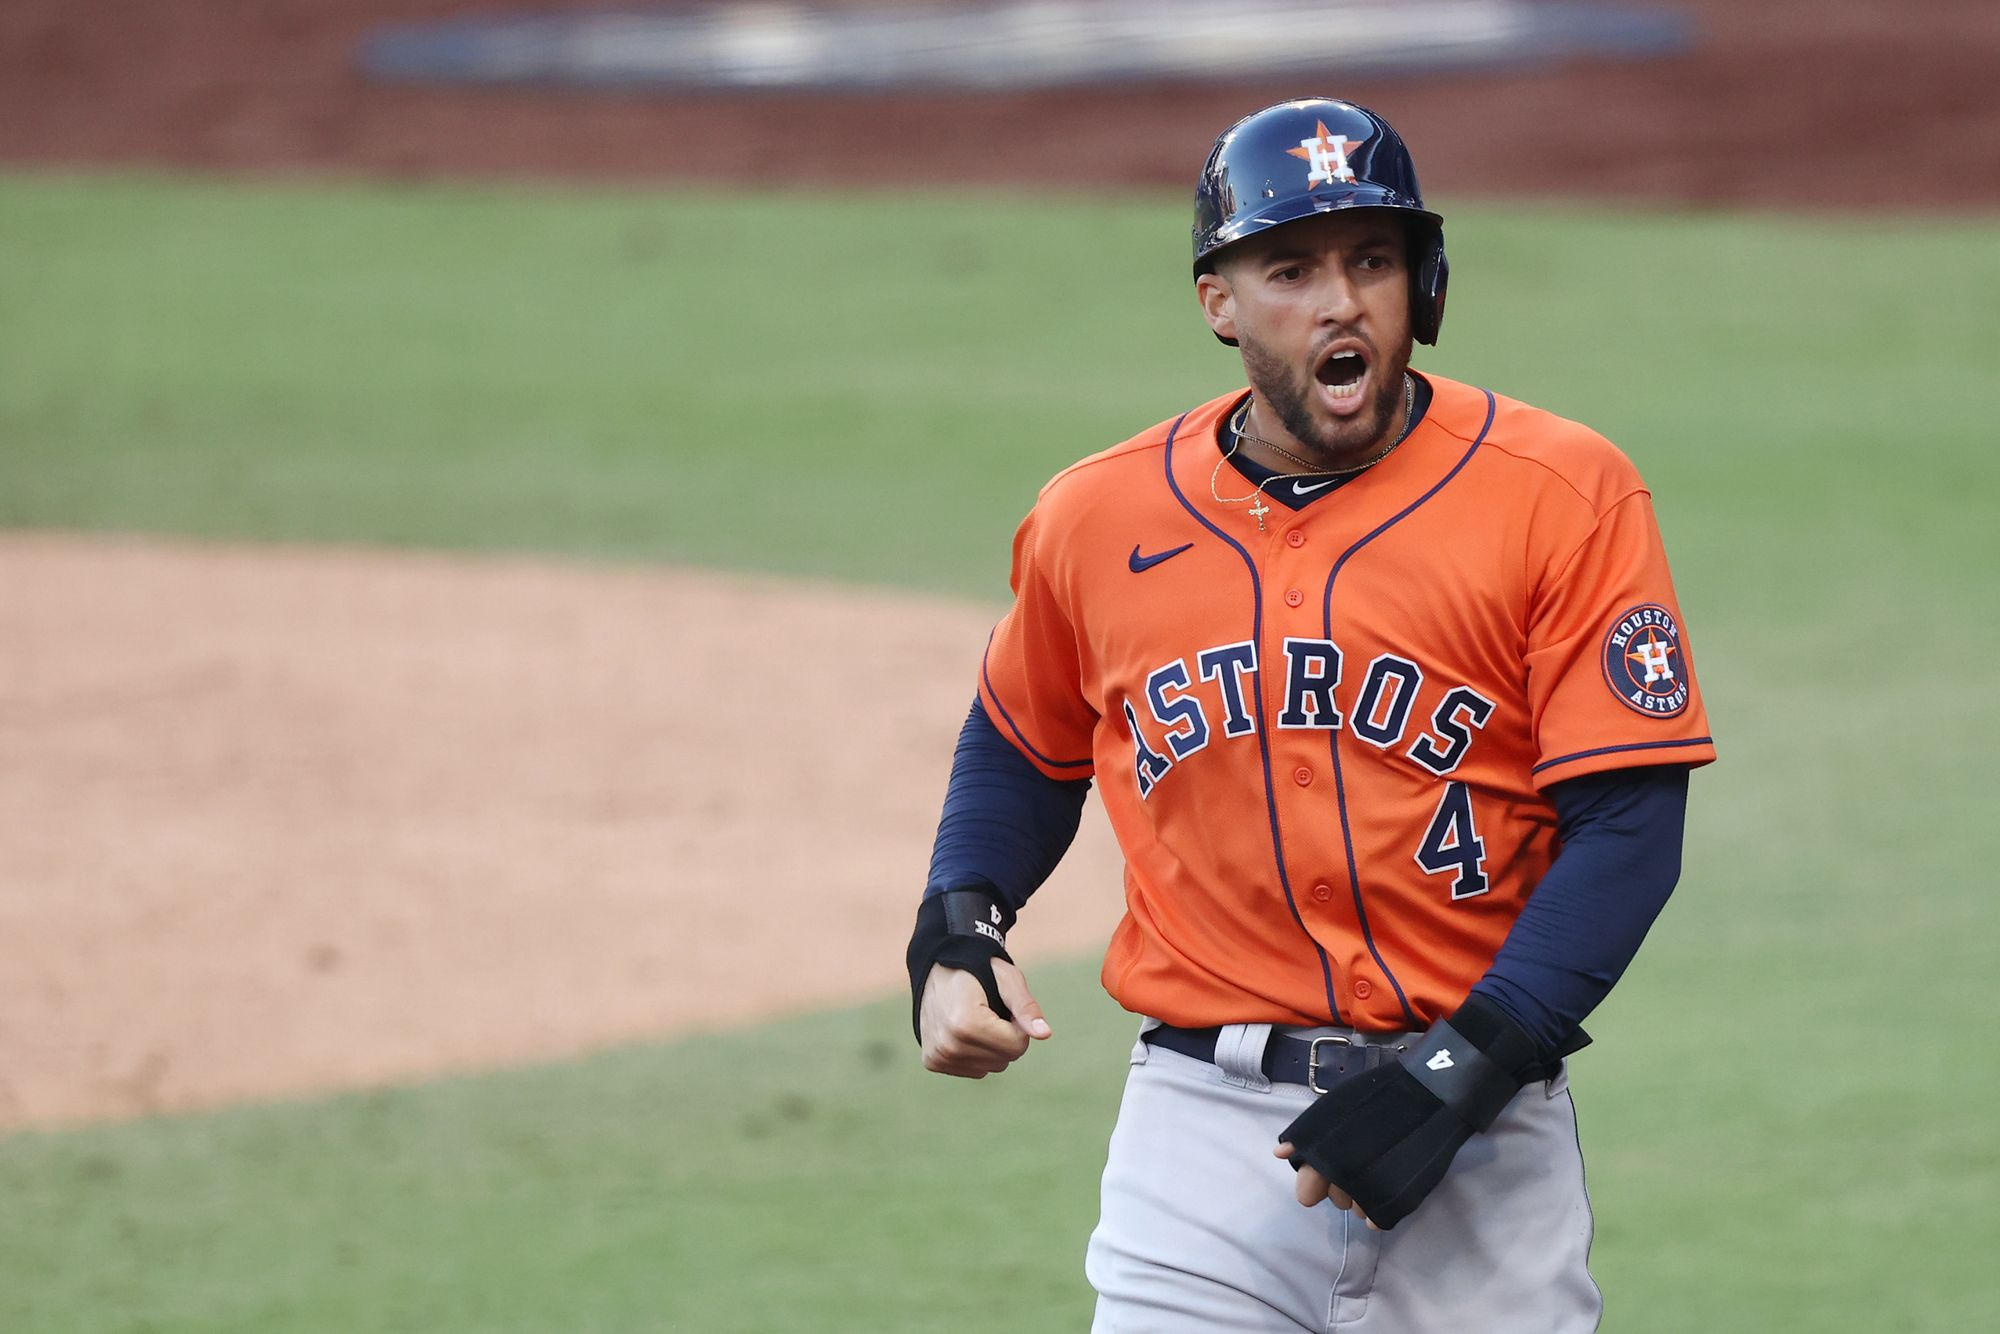 George Springer Signs Massive Contract with Blue Jays